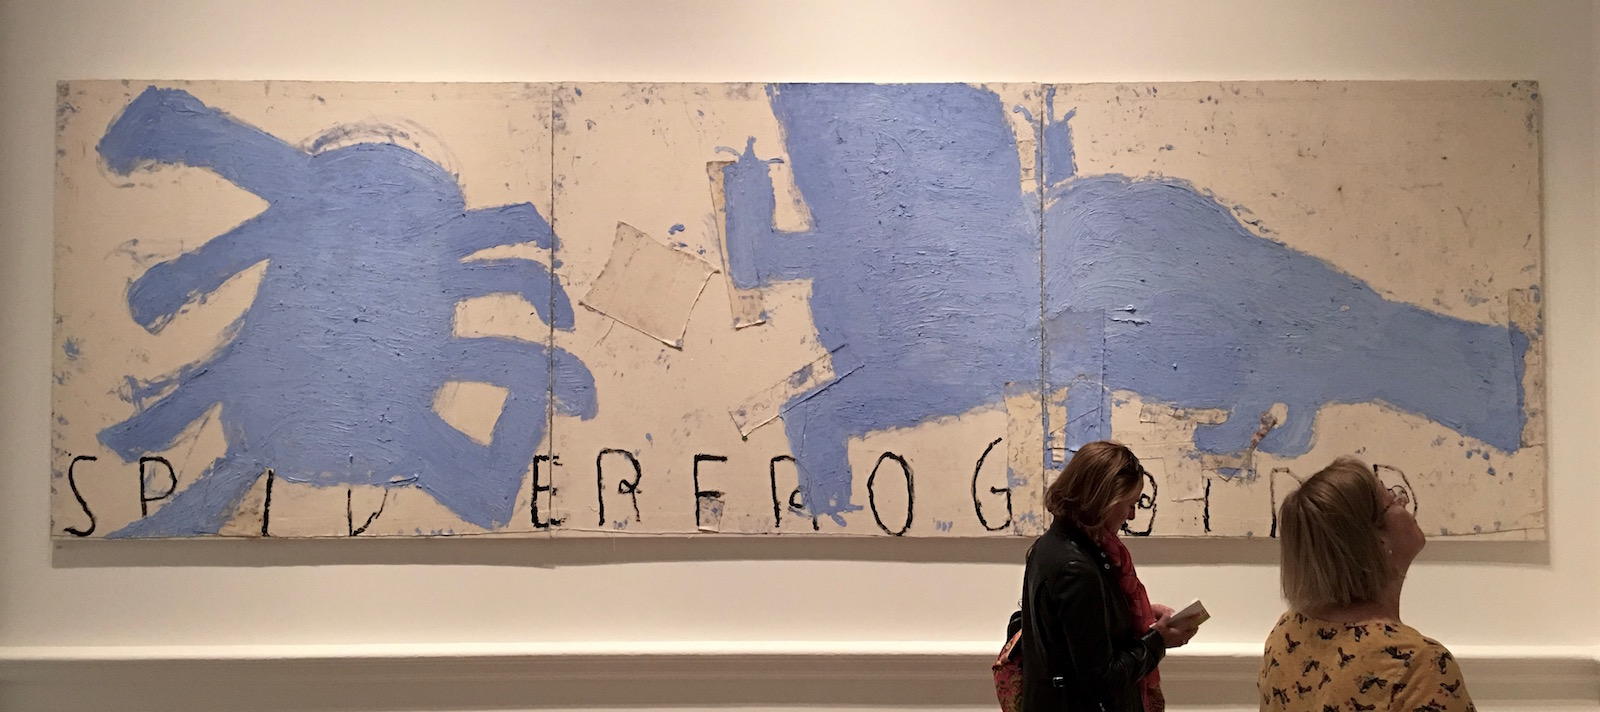 Rose Wylie Summer Exhibition Royal Academy reviewed at www.CELLOPHANELAND.com